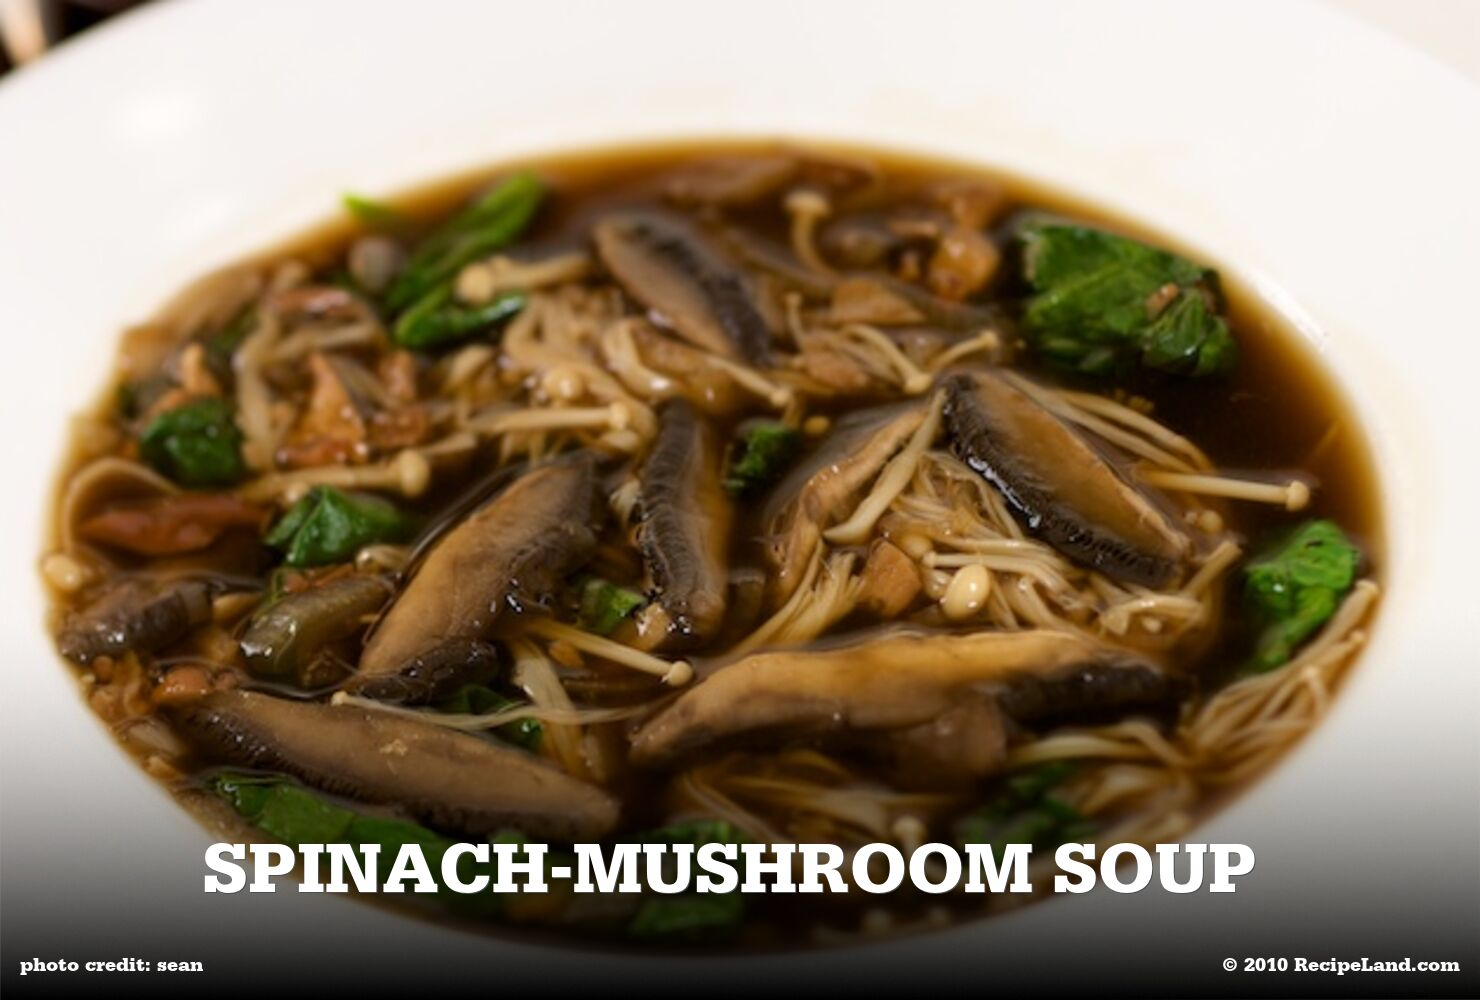 Spinach-Mushroom Soup